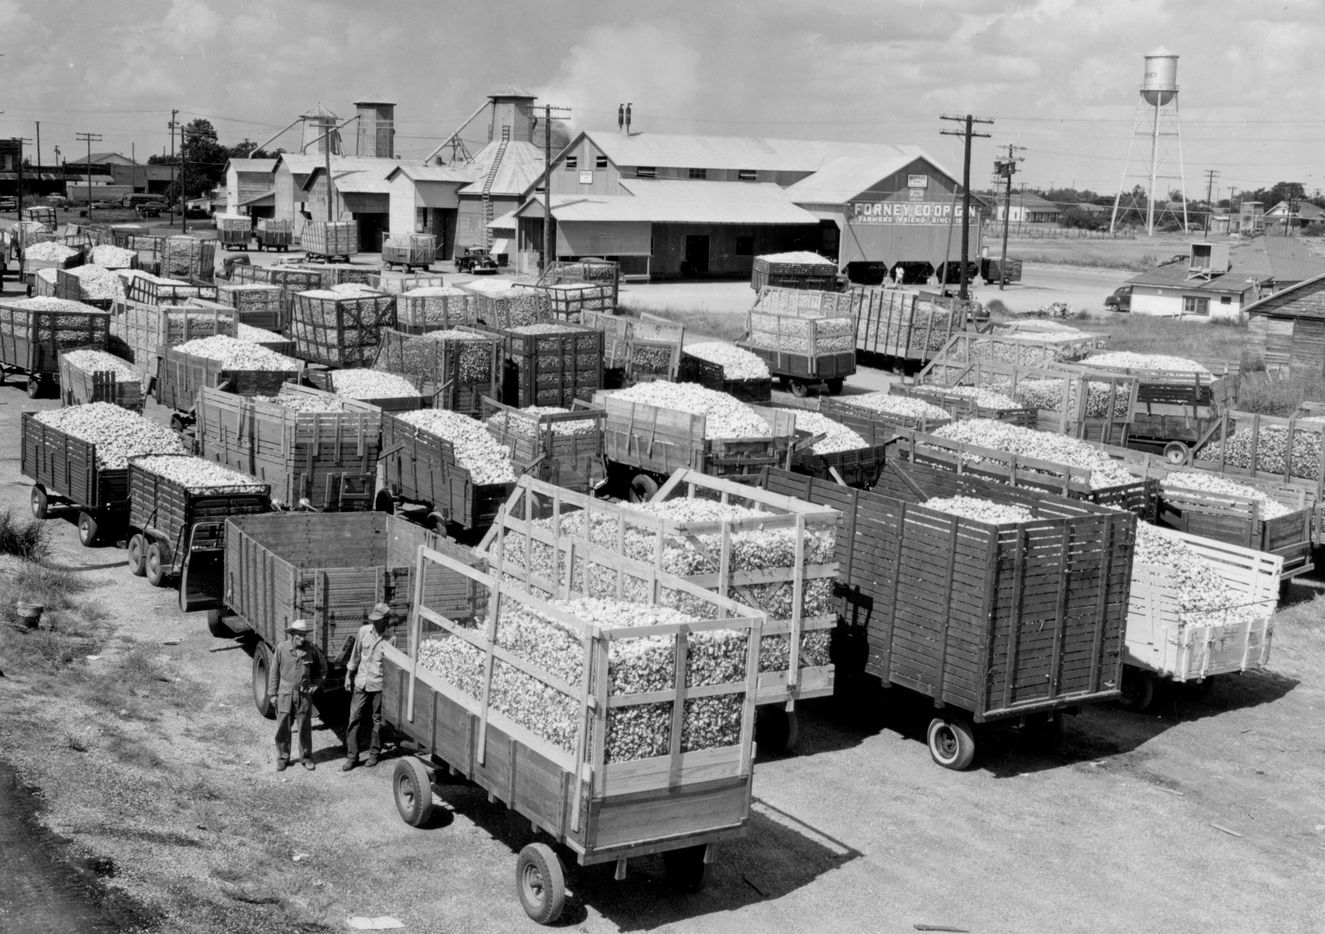 In 1958, farmers with trailers full of cotton line up outside the Forney Cotton Gin, which was then the last gin in Kaufman County.